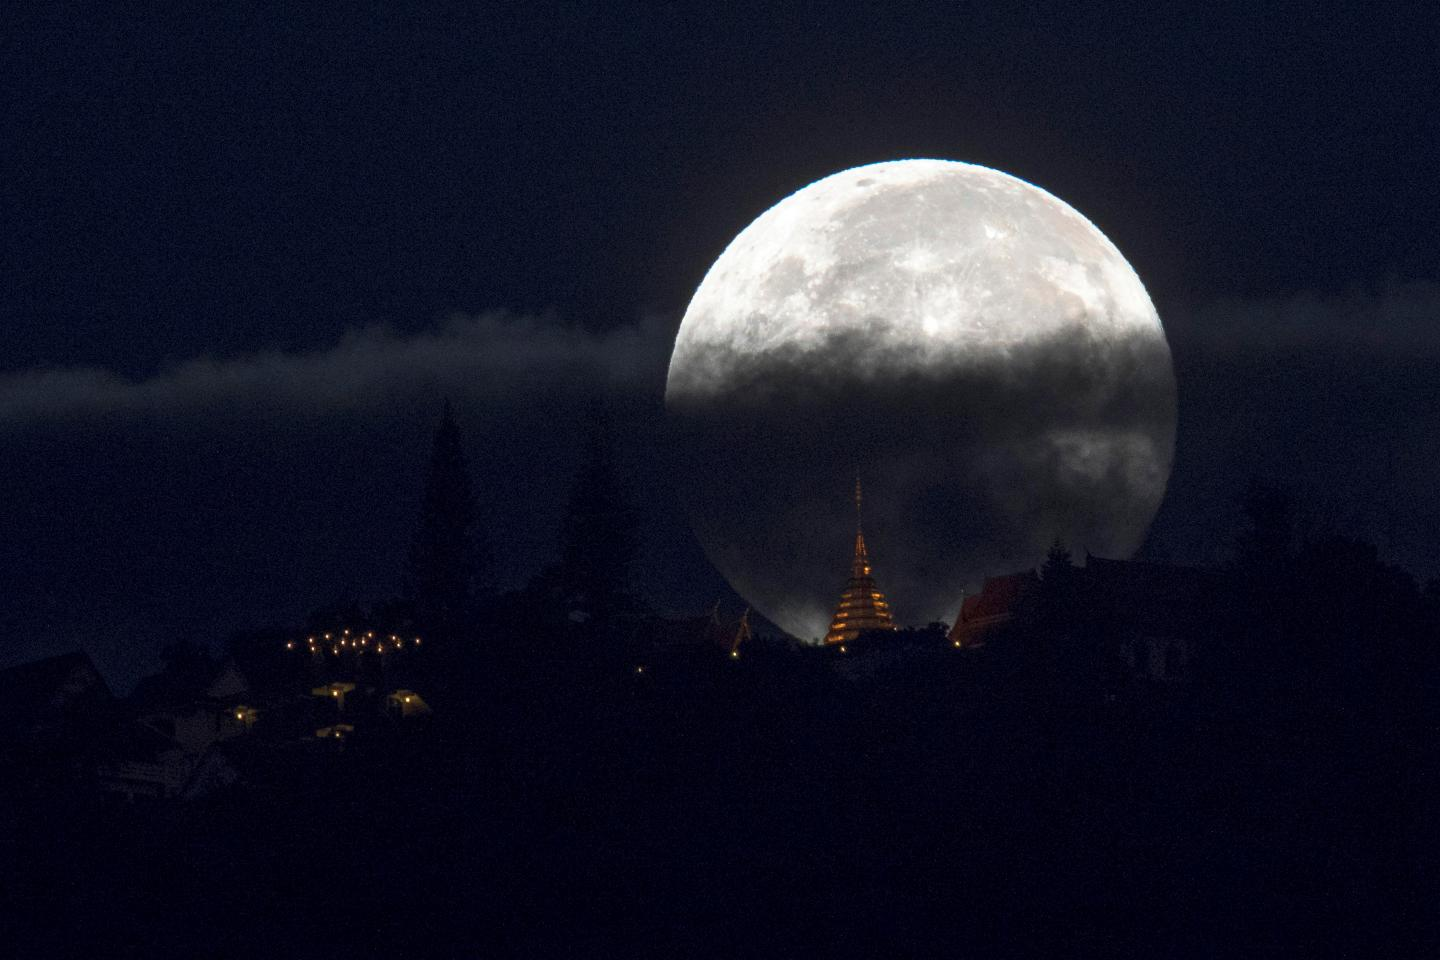 Supermoon as seen in Thailand